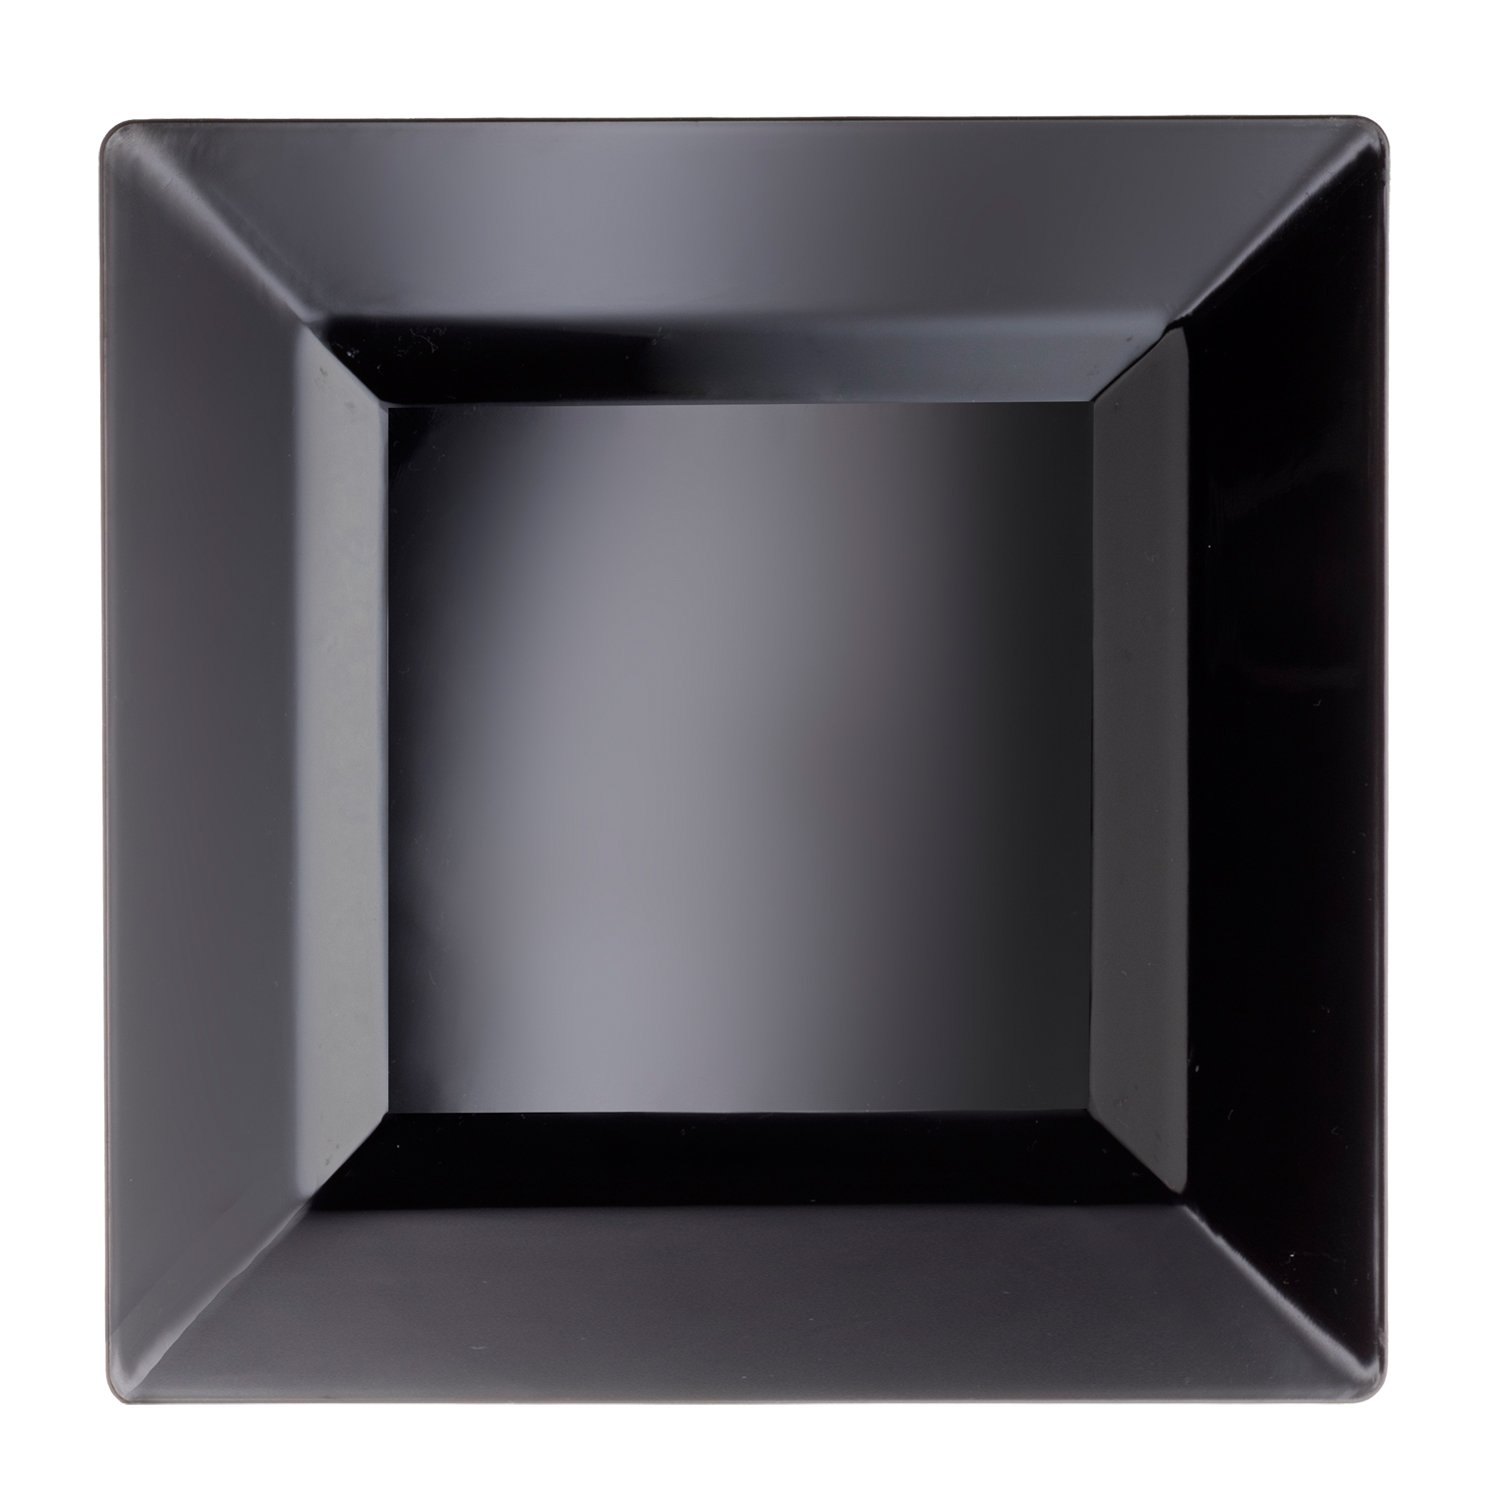 Party Essentials Classic Square Plates, 9.5'', Black (Pack of 120)